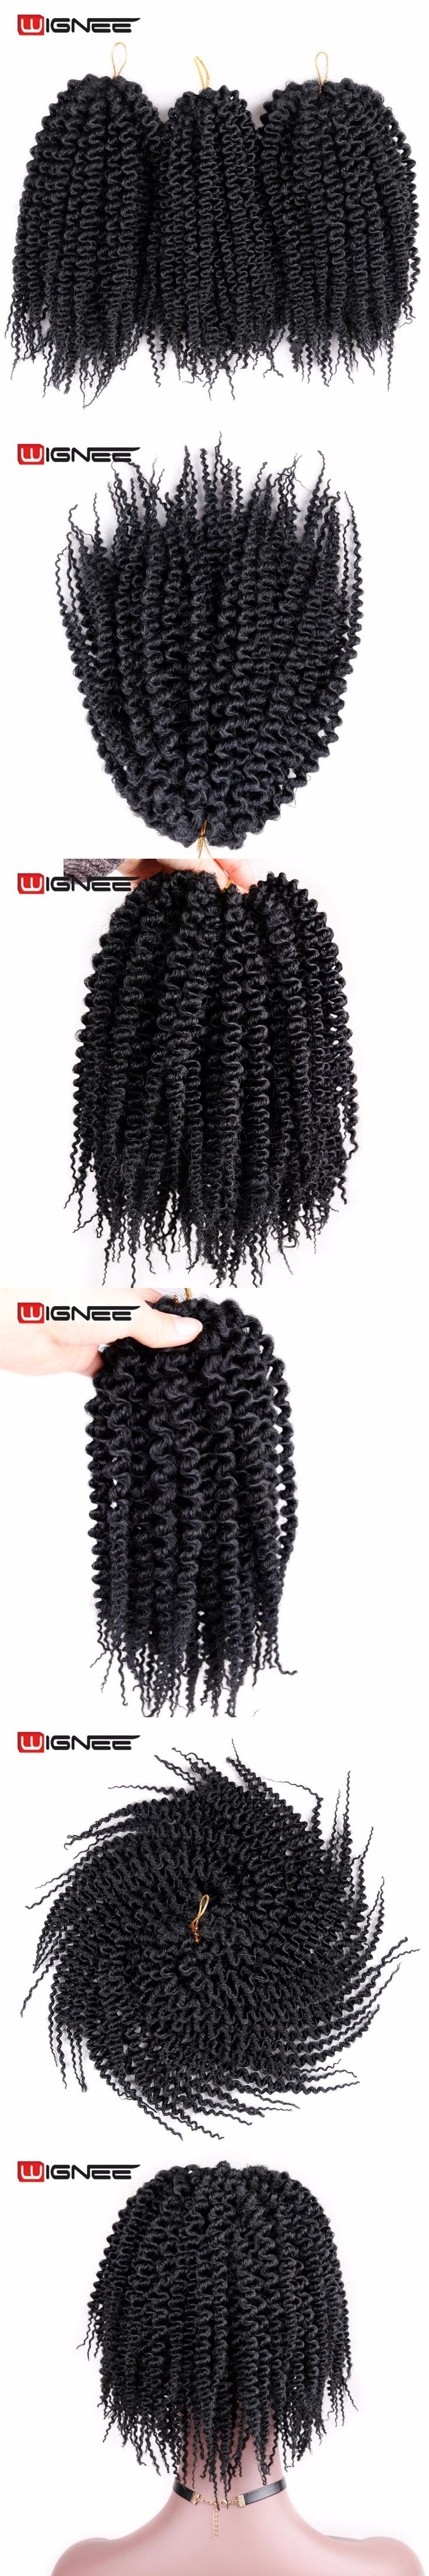 Wignee Low Temperature Synthetic Fiber Havana Twist Hair Extensions For Black Women Fake Hair Crochet Twist Braiding Hair Pieces